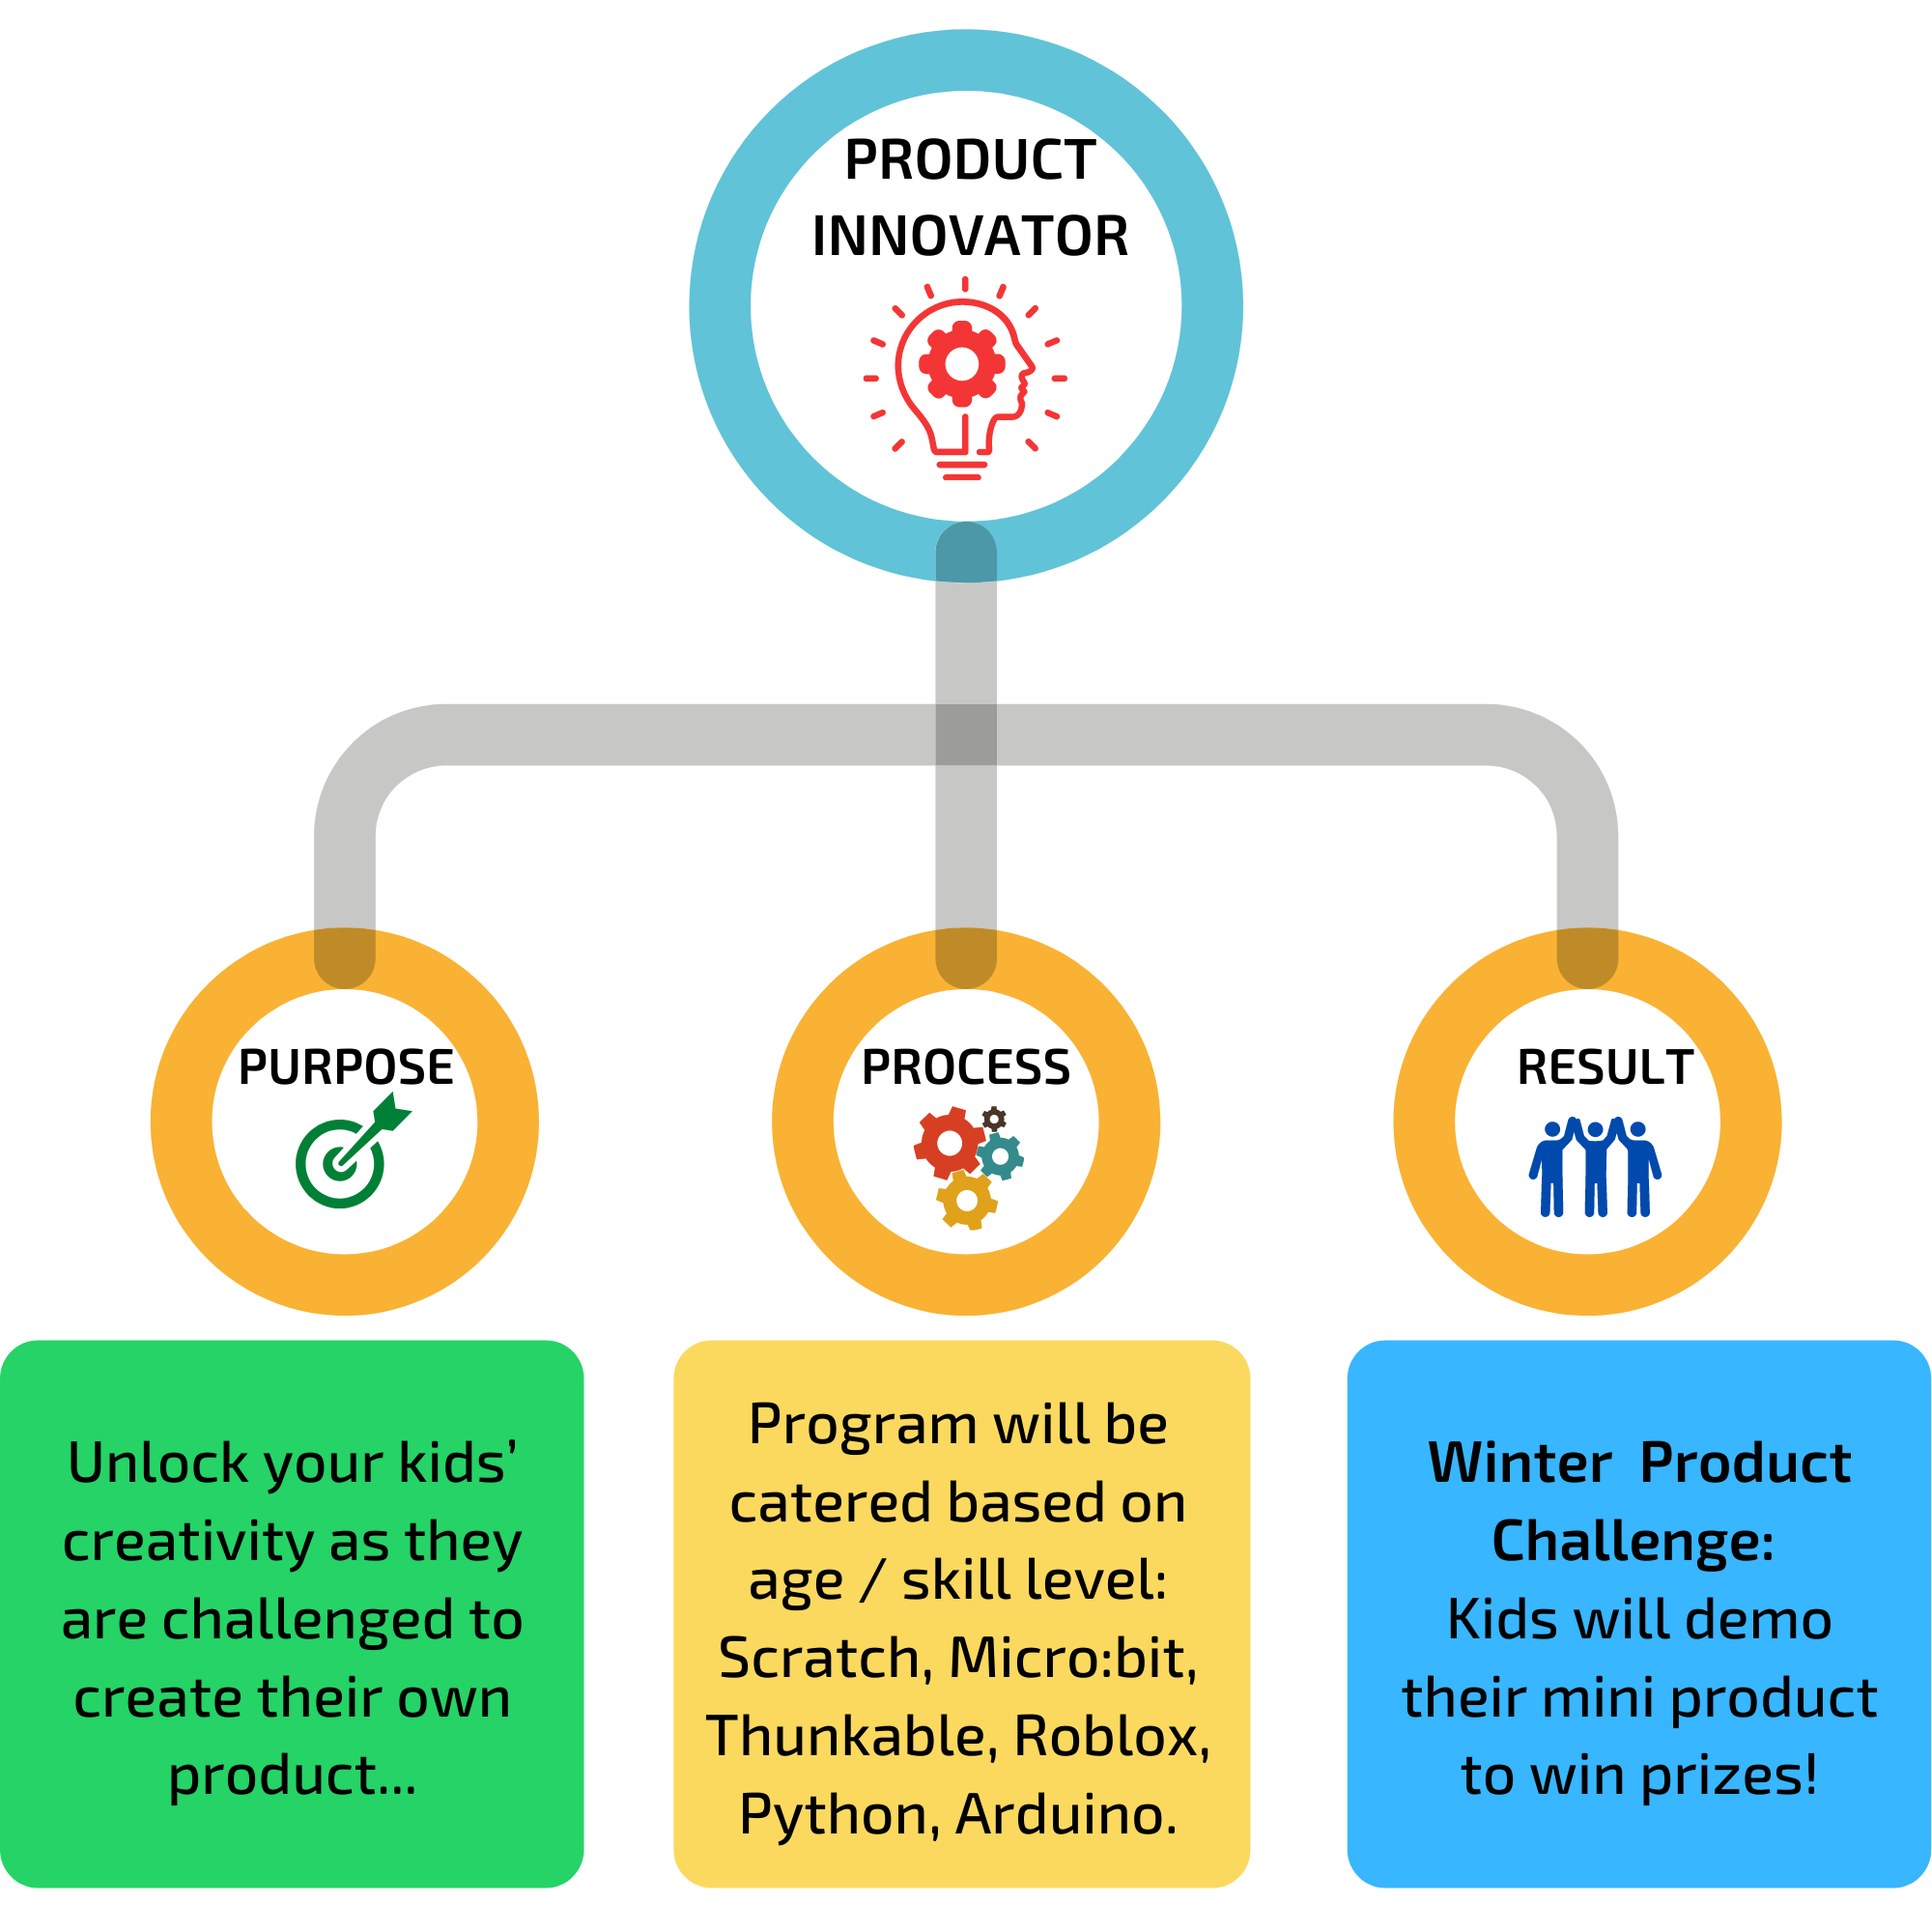 winter product innovation challenge